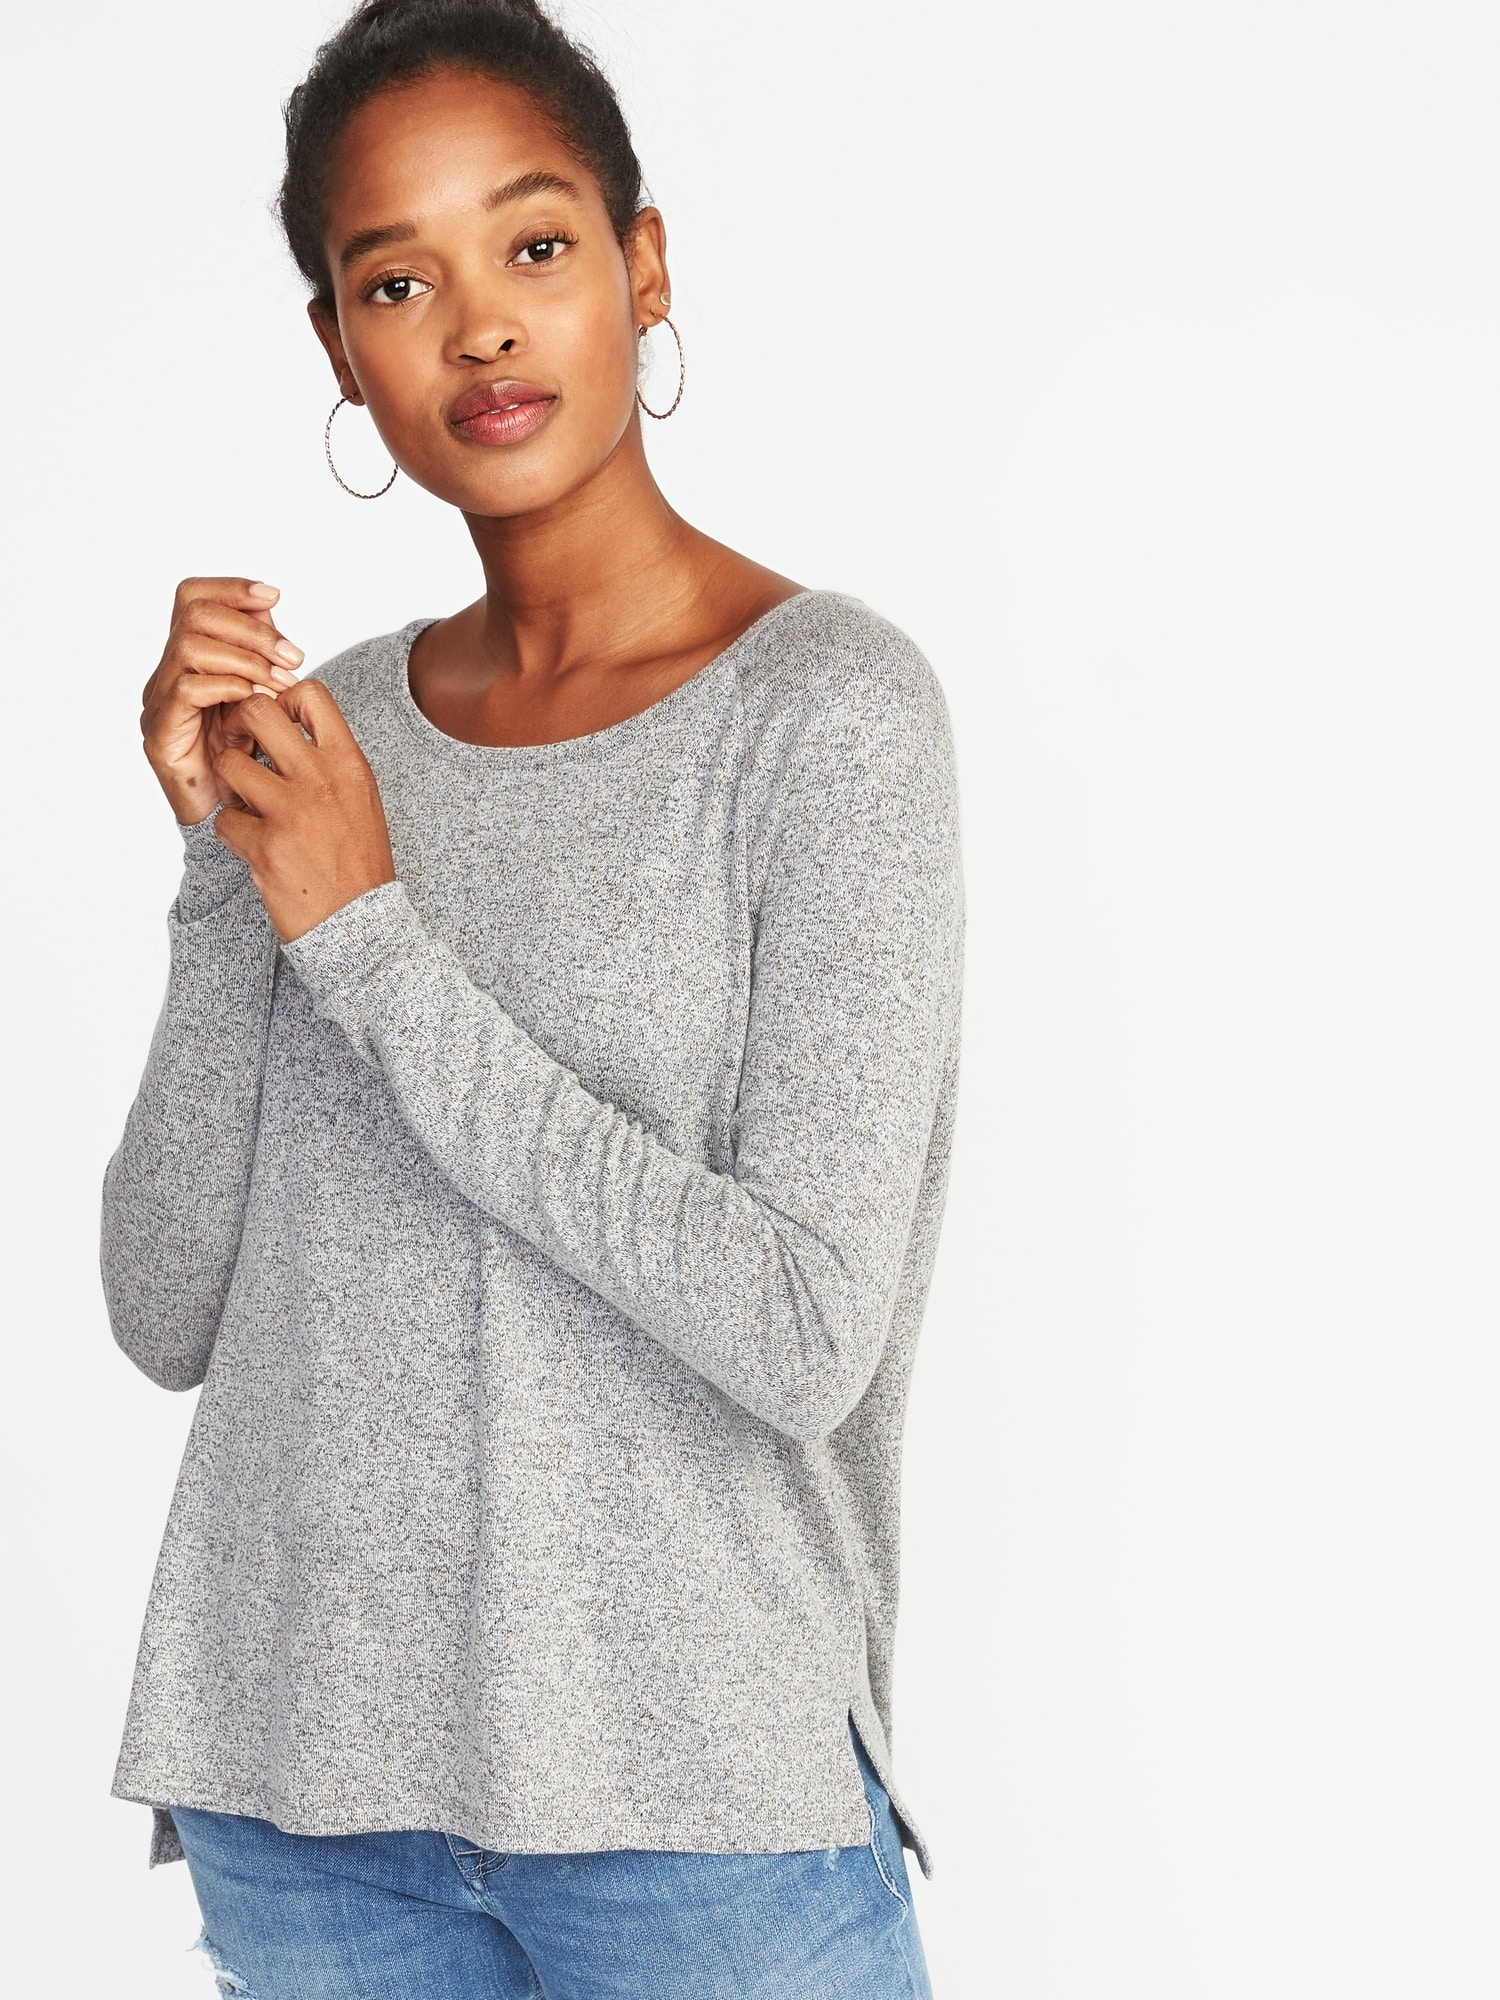 7dfdaf6d34 Loose Luxe Soft-Spun Tee for Women | Old Navy